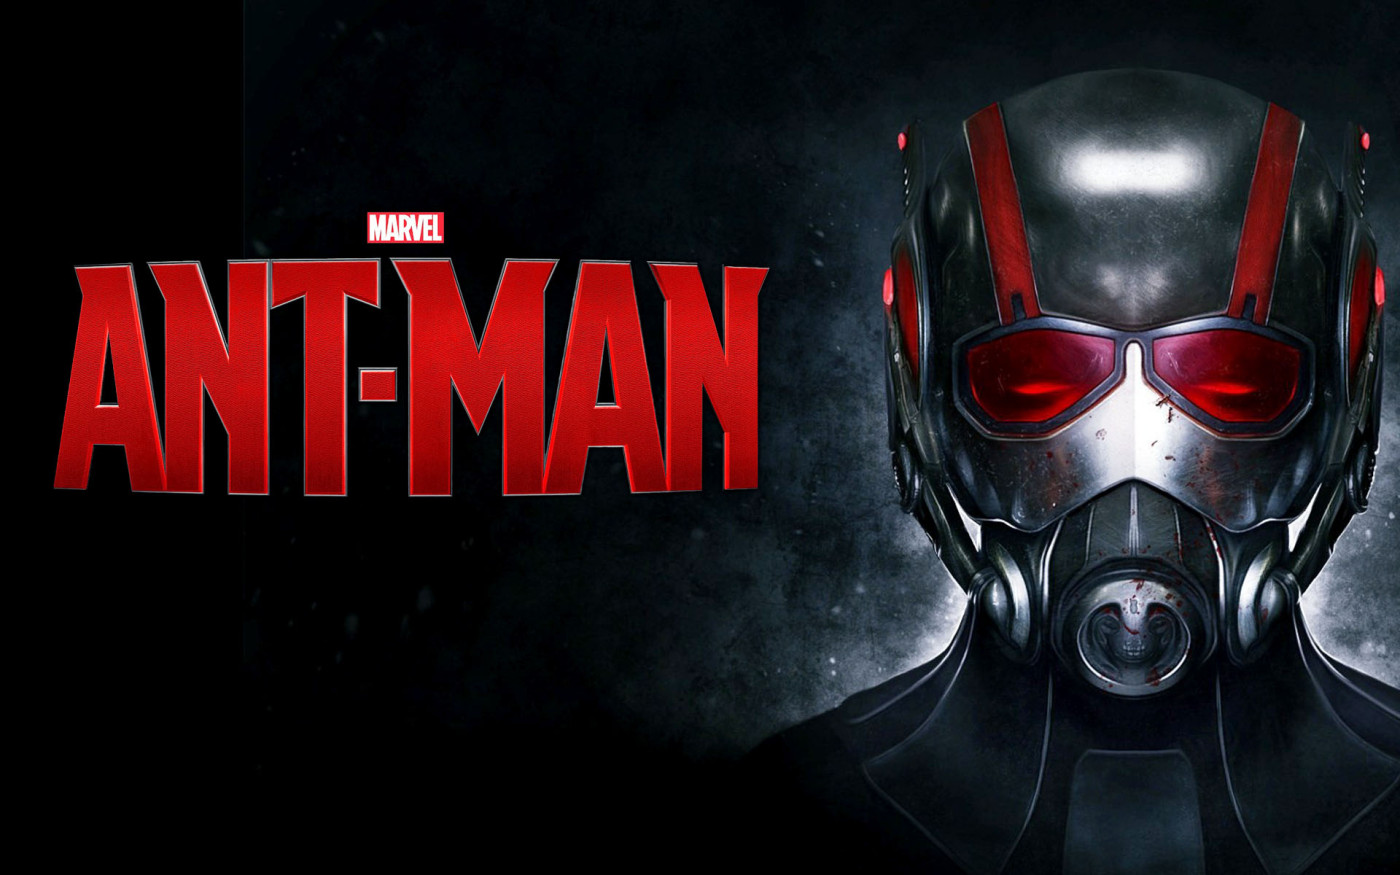 3 Reasons I Love Ant-Man Besides the Movie